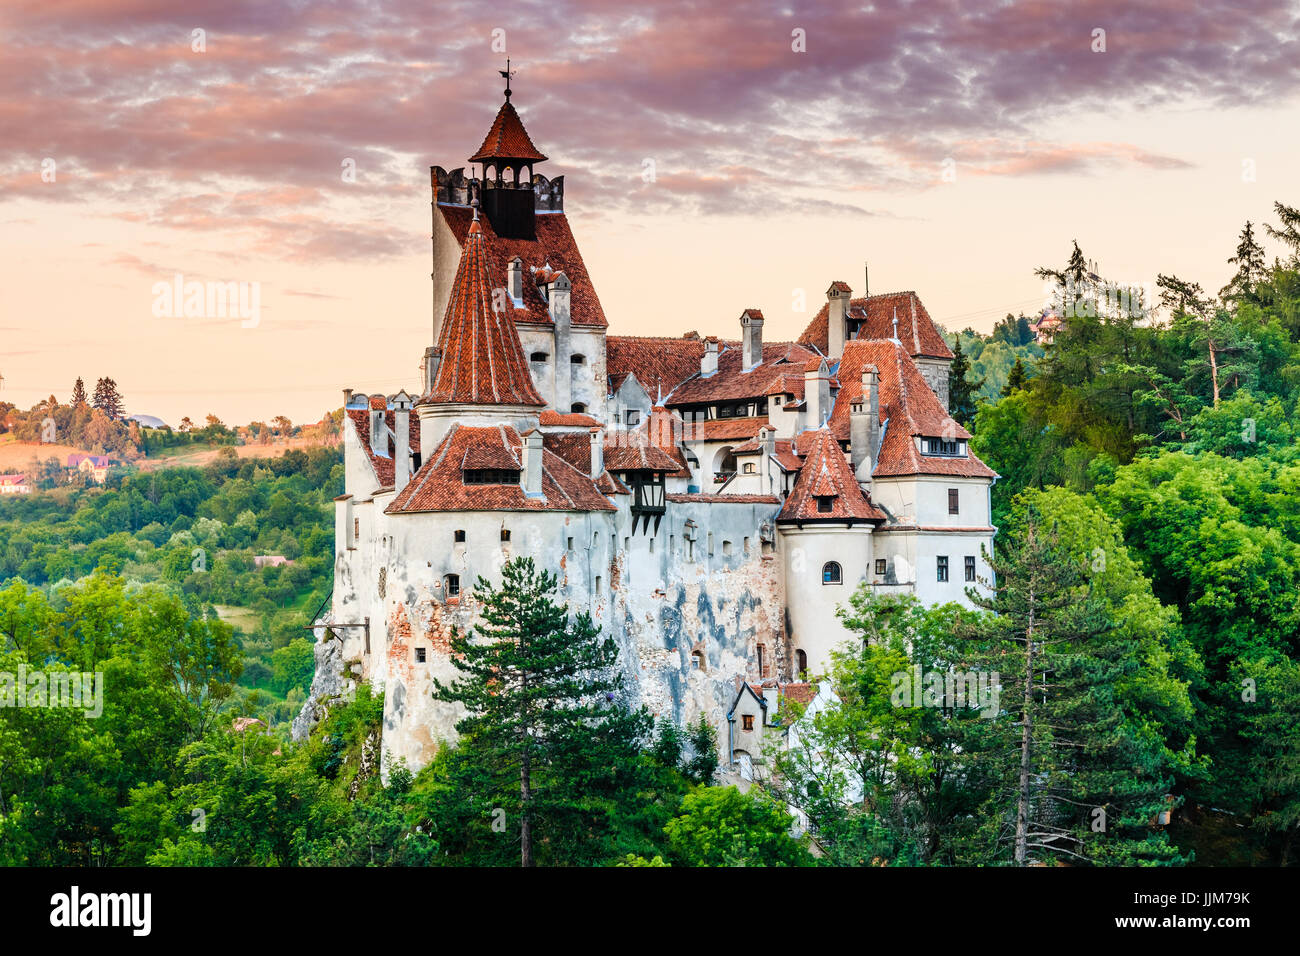 Brasov, Transylvania. Romania. The medieval Castle of Bran, known for the myth of Dracula. - Stock Image